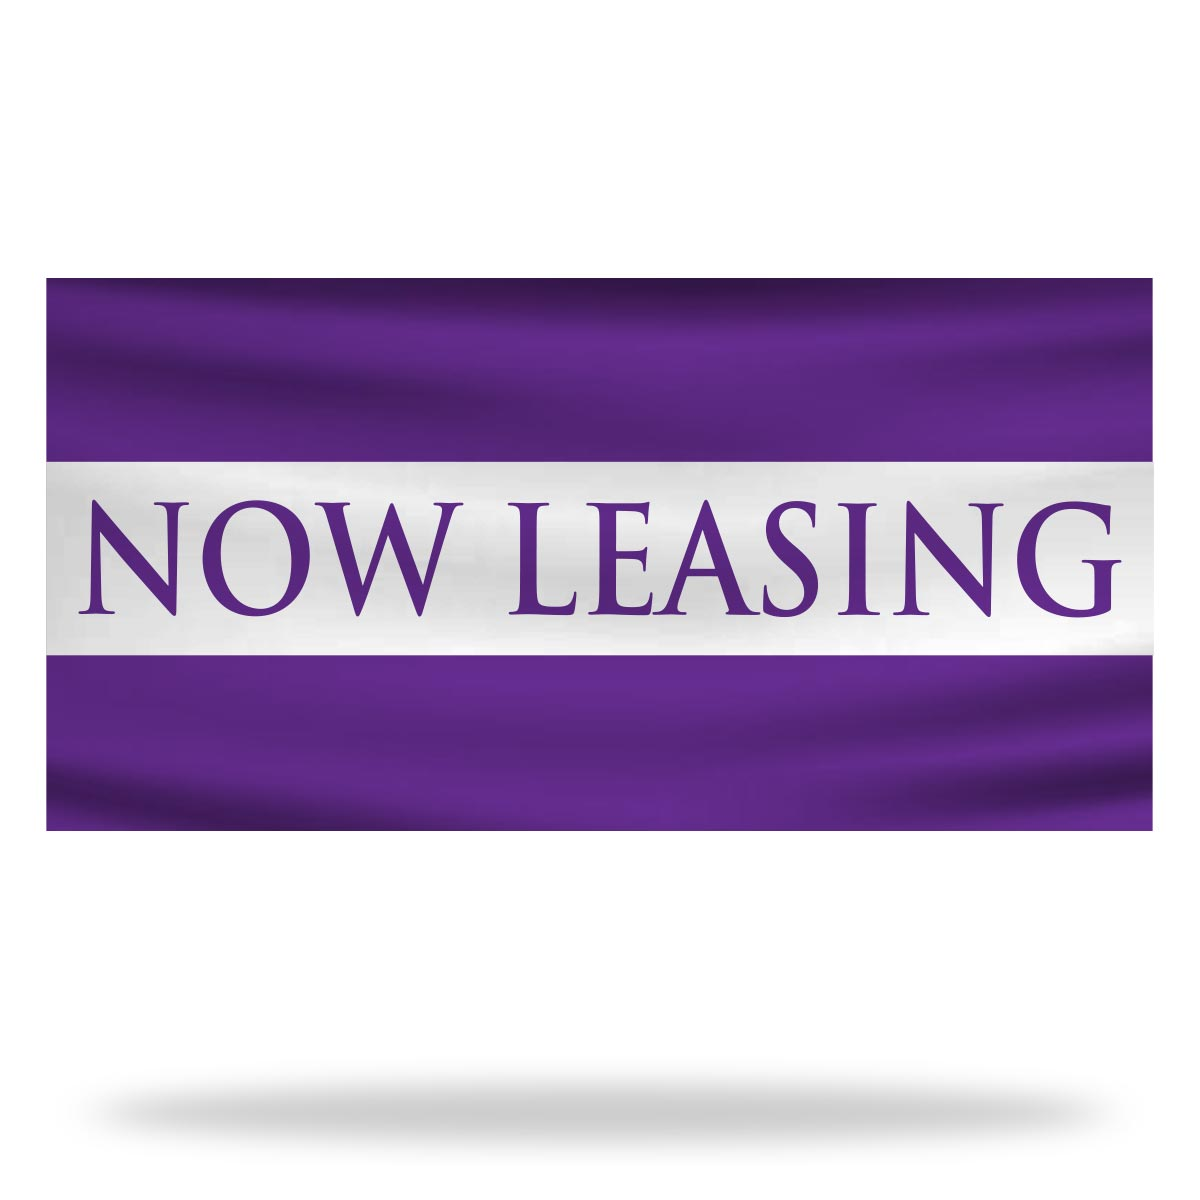 Now Leasing Flags & Banners Design 03